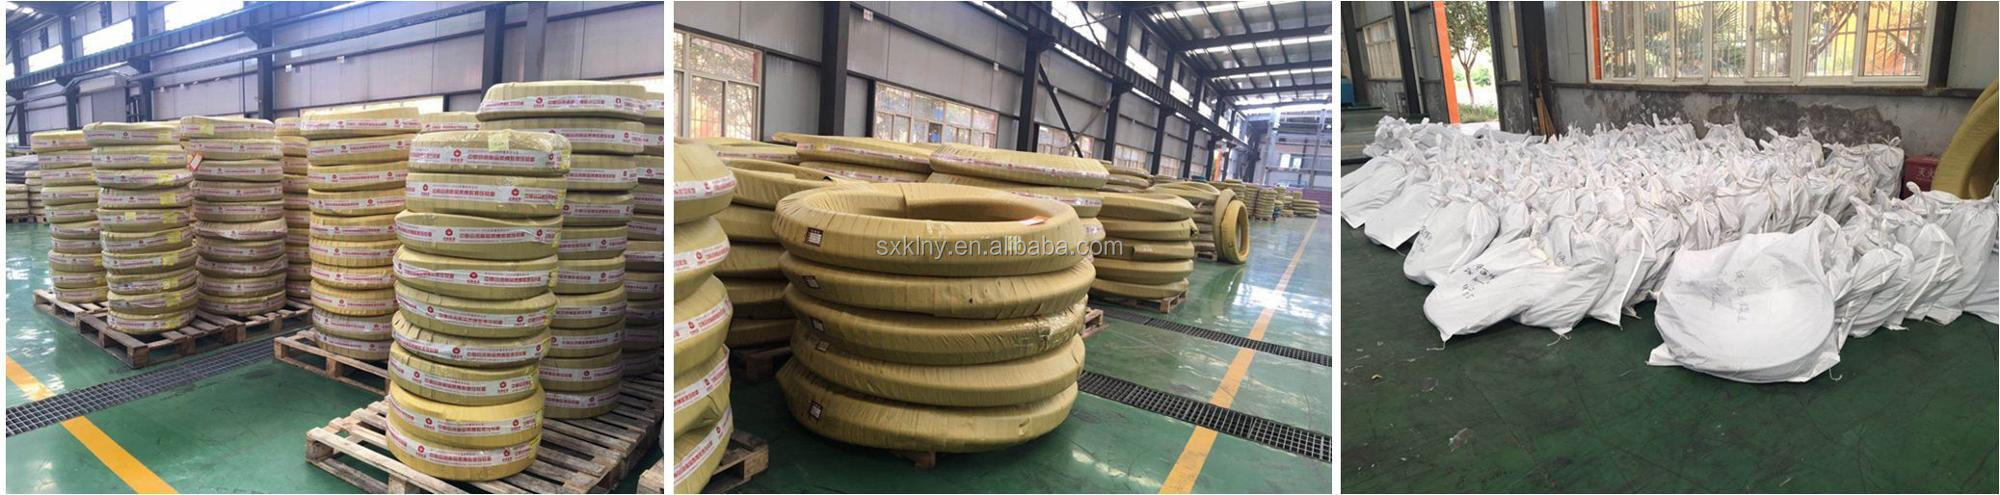 Low MOQ Wear Resistant Steel Wire Rubber Hose for Drilling